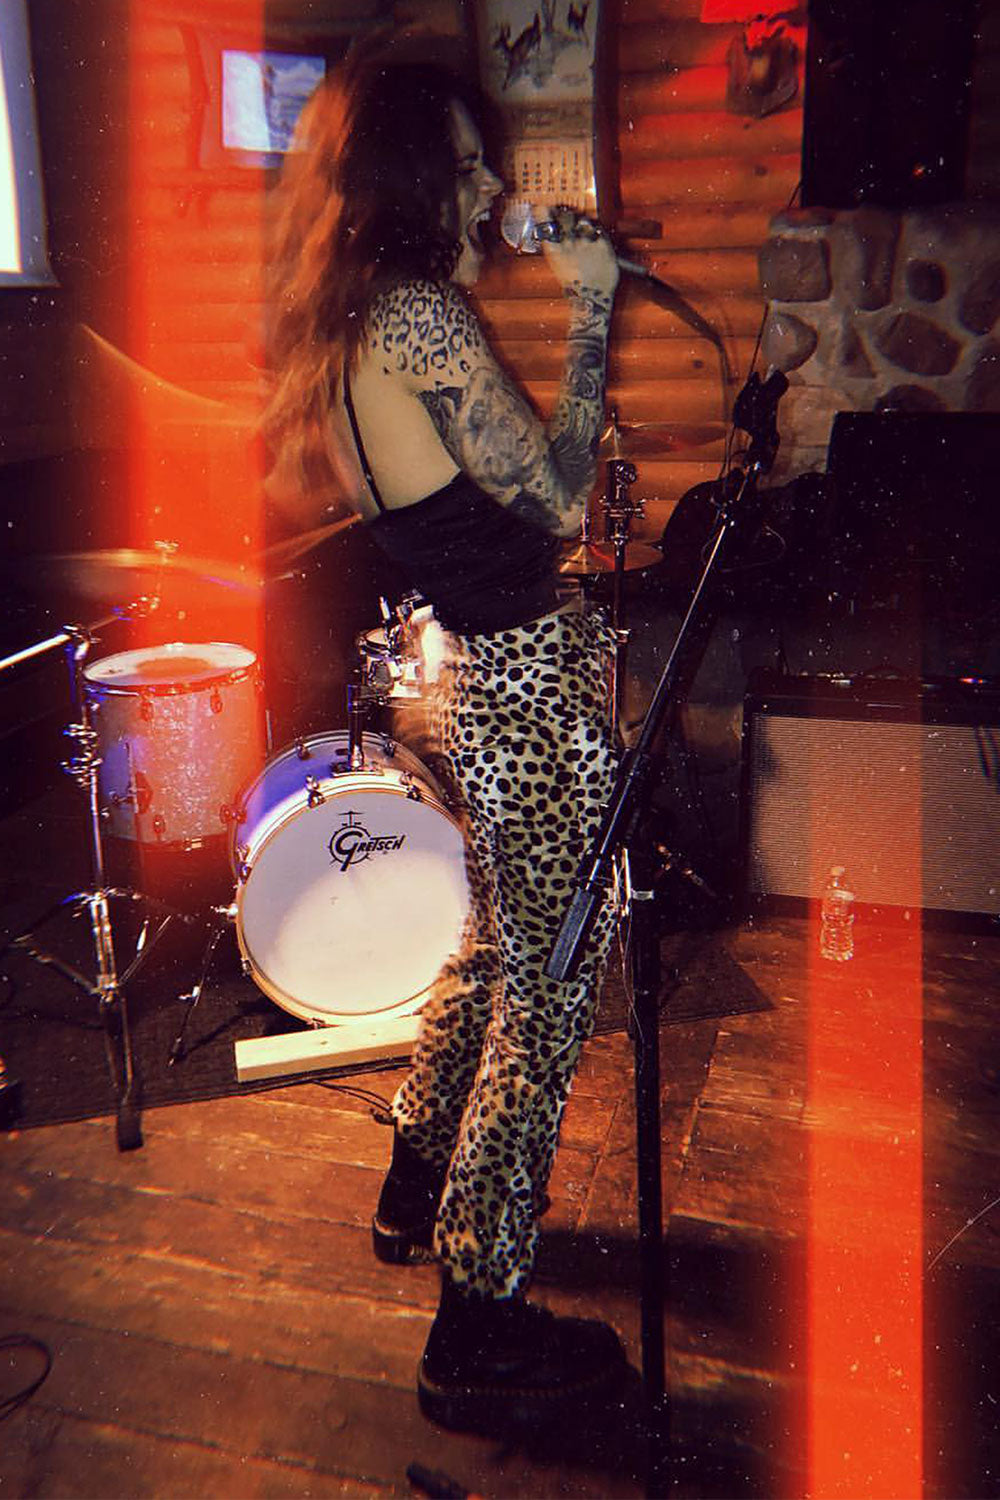 Electric 77 Dalmatian Cigarette Pants